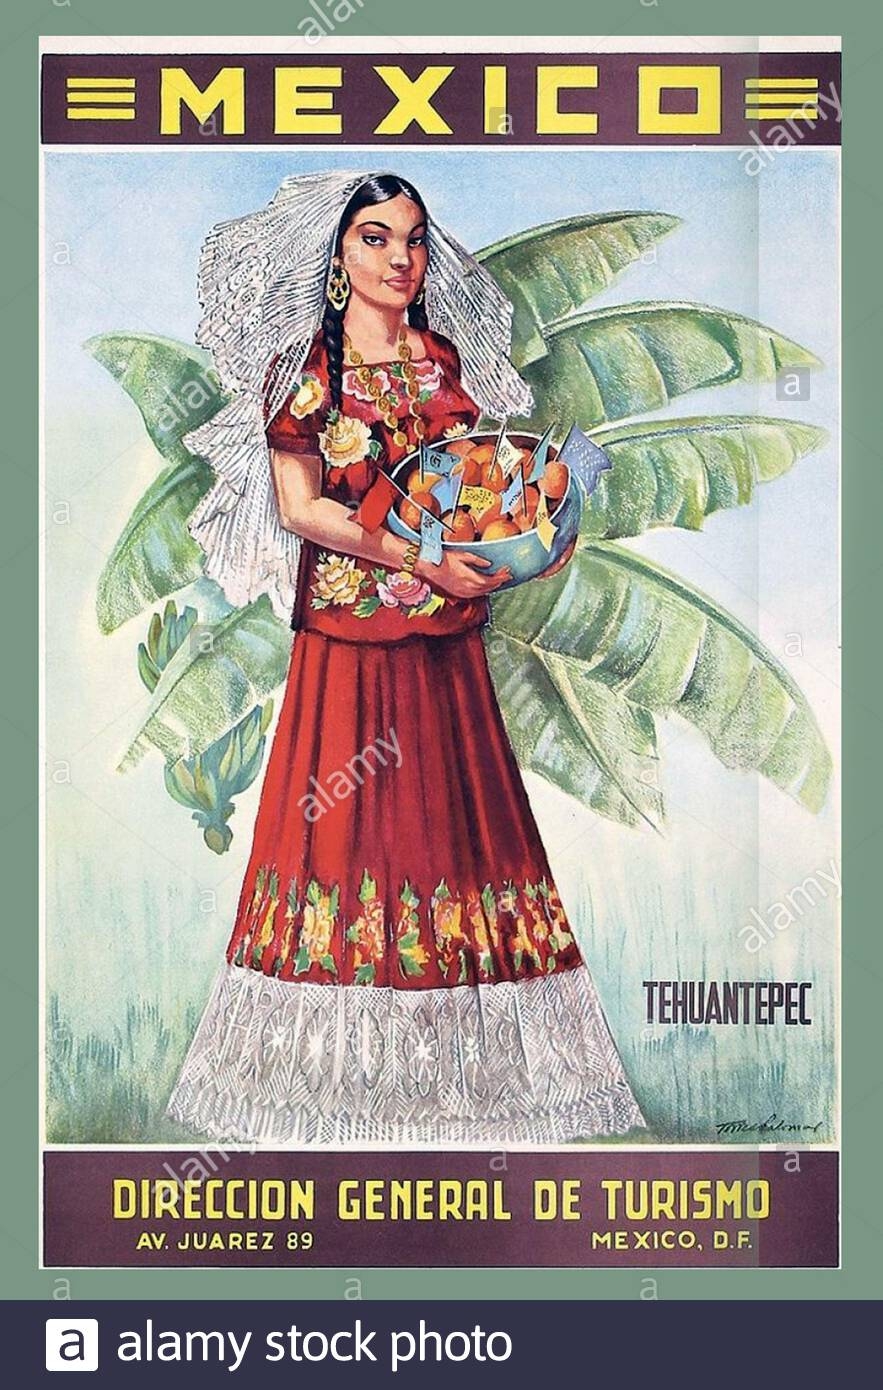 Adult Guide in Tehuantepec